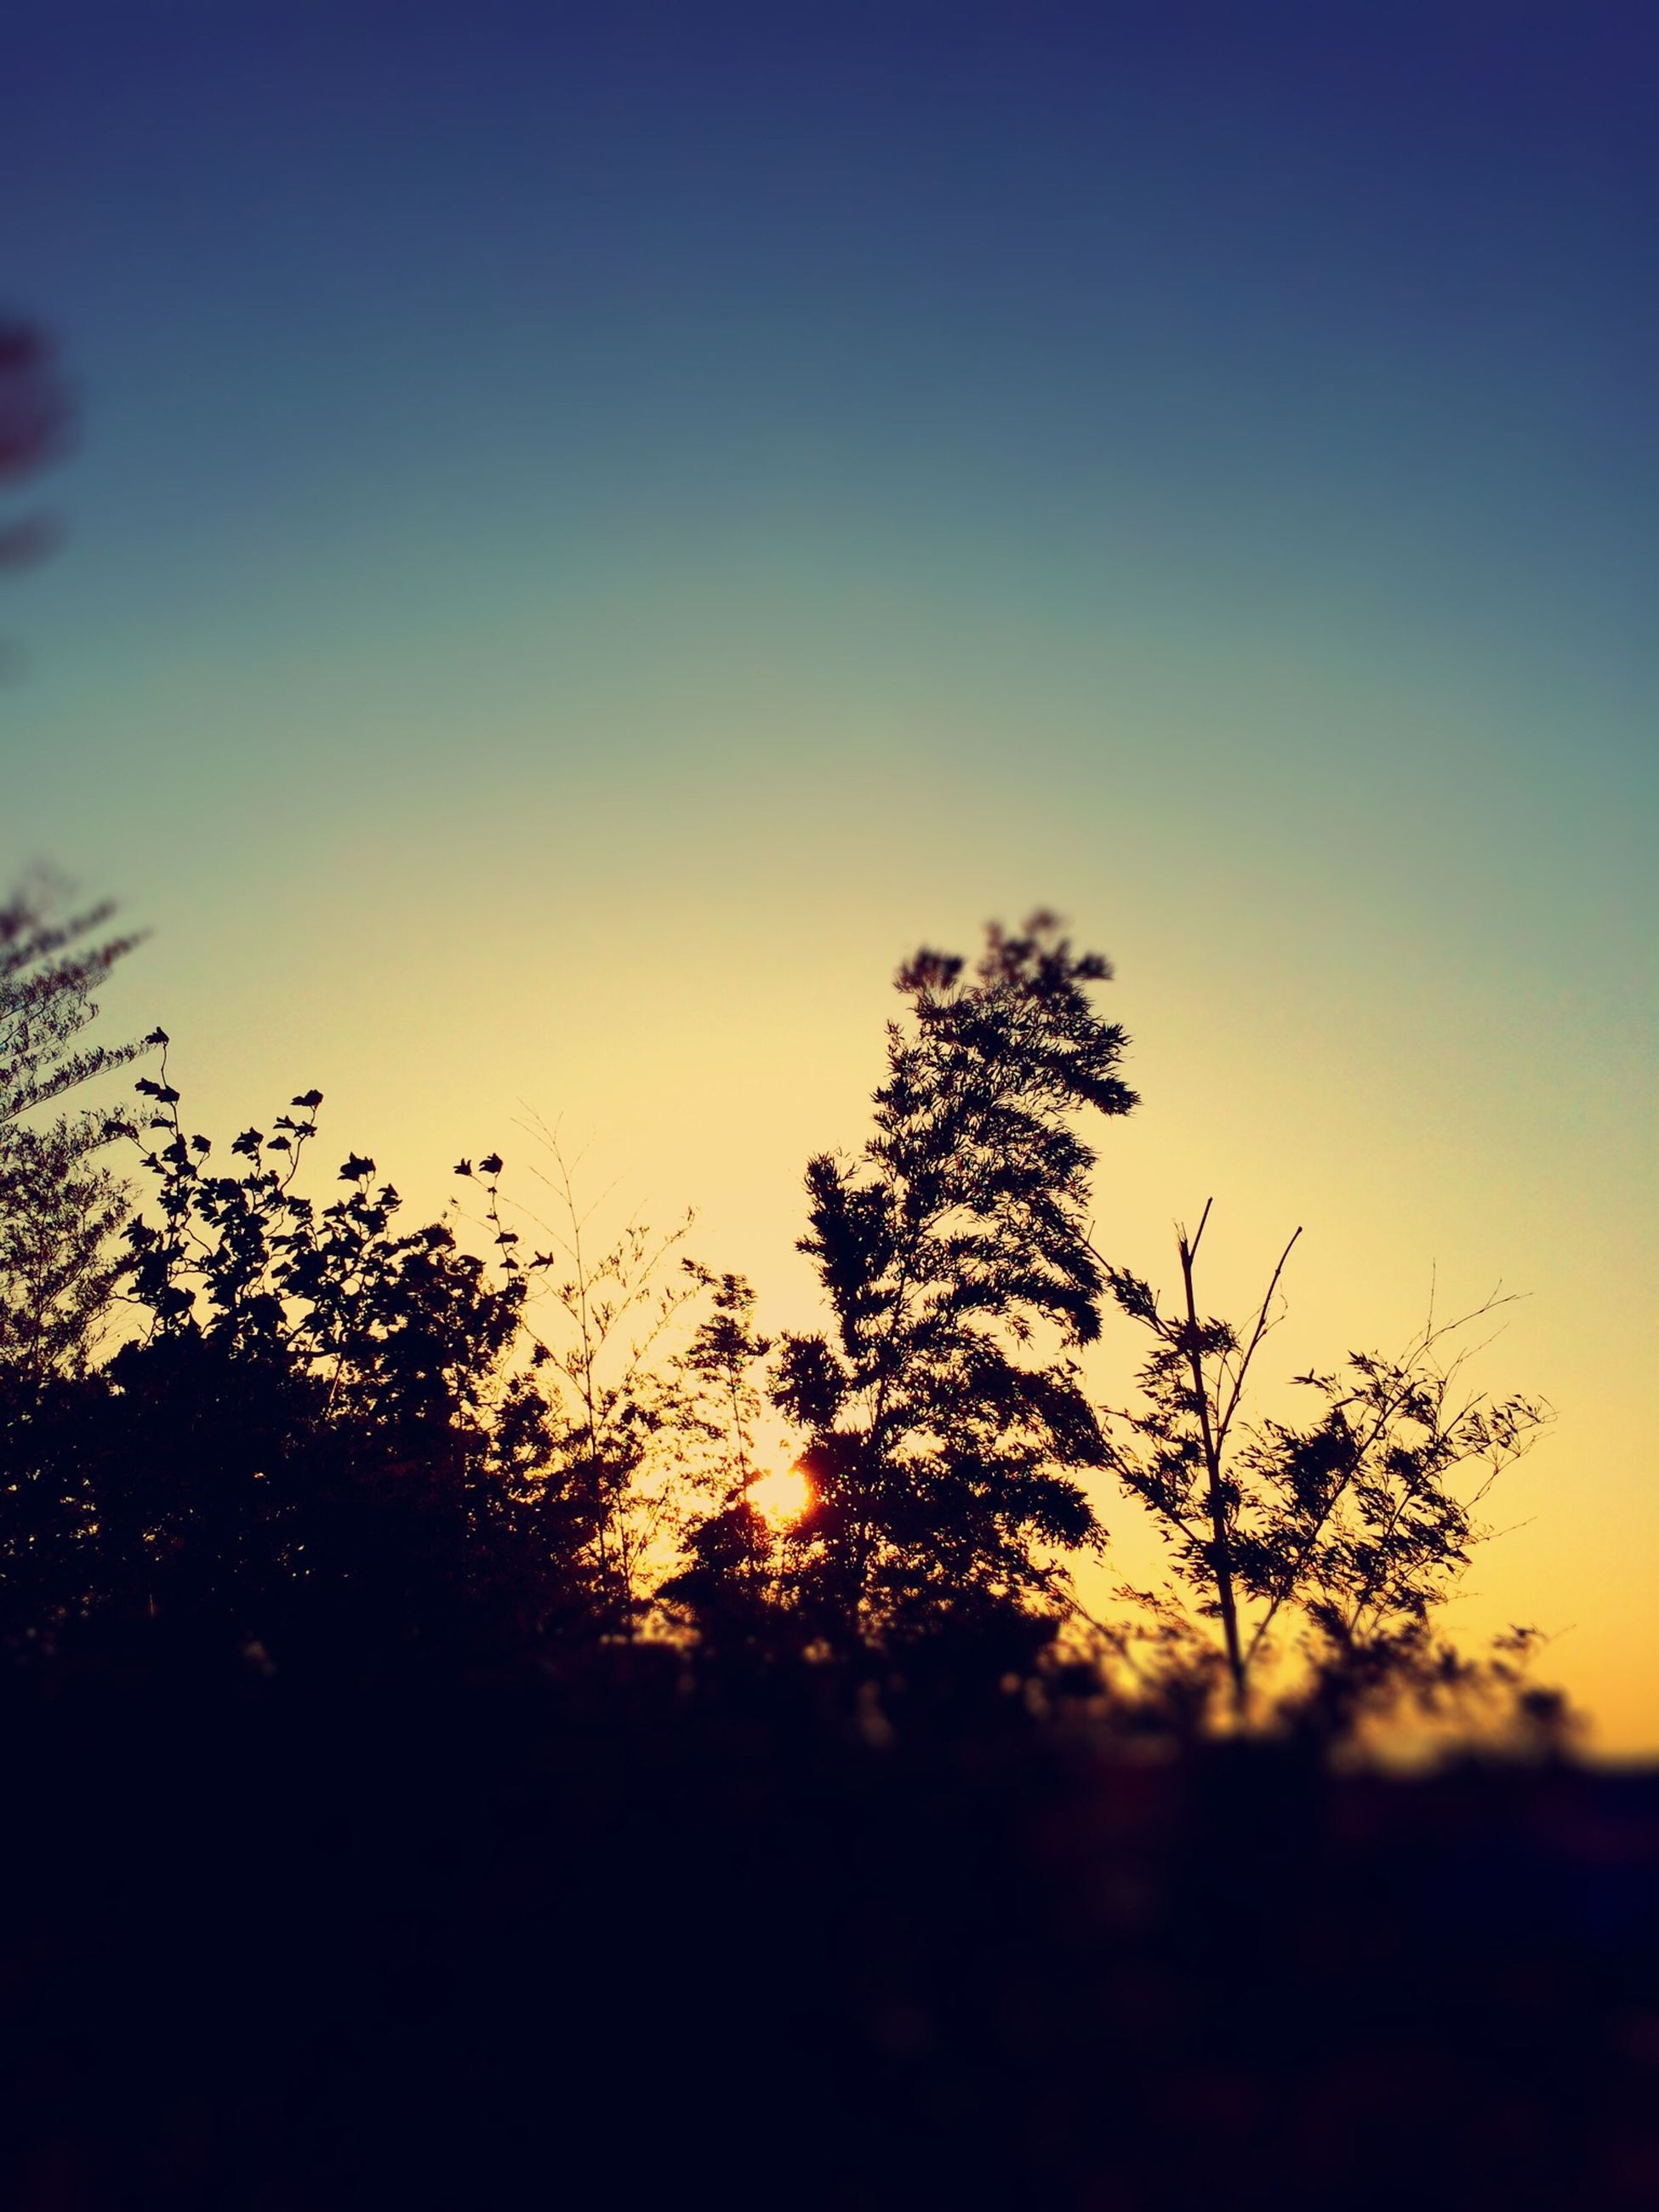 sunset, silhouette, clear sky, copy space, growth, beauty in nature, tranquility, nature, tree, tranquil scene, scenics, plant, field, sky, orange color, dusk, landscape, no people, outdoors, idyllic